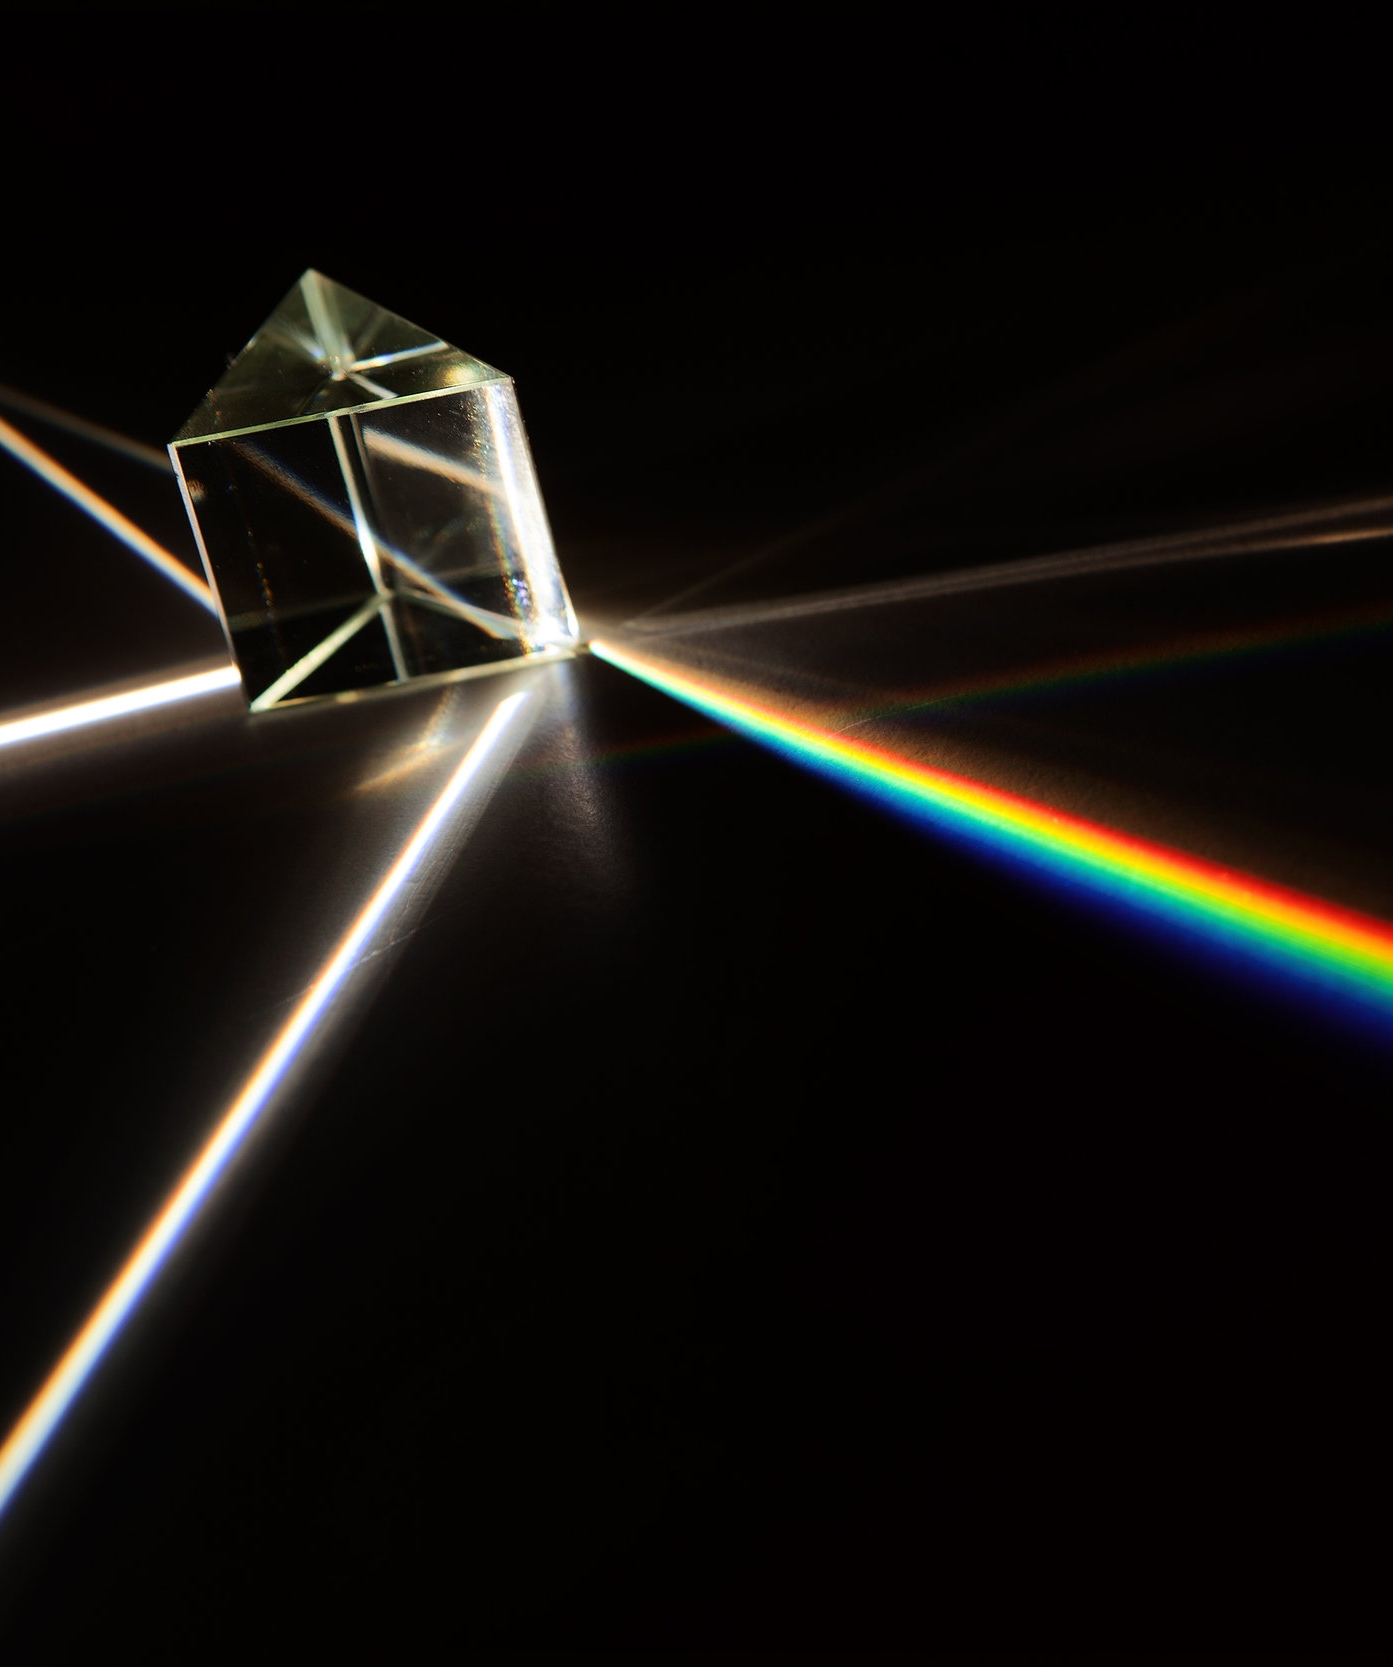 A prism separates color from white light